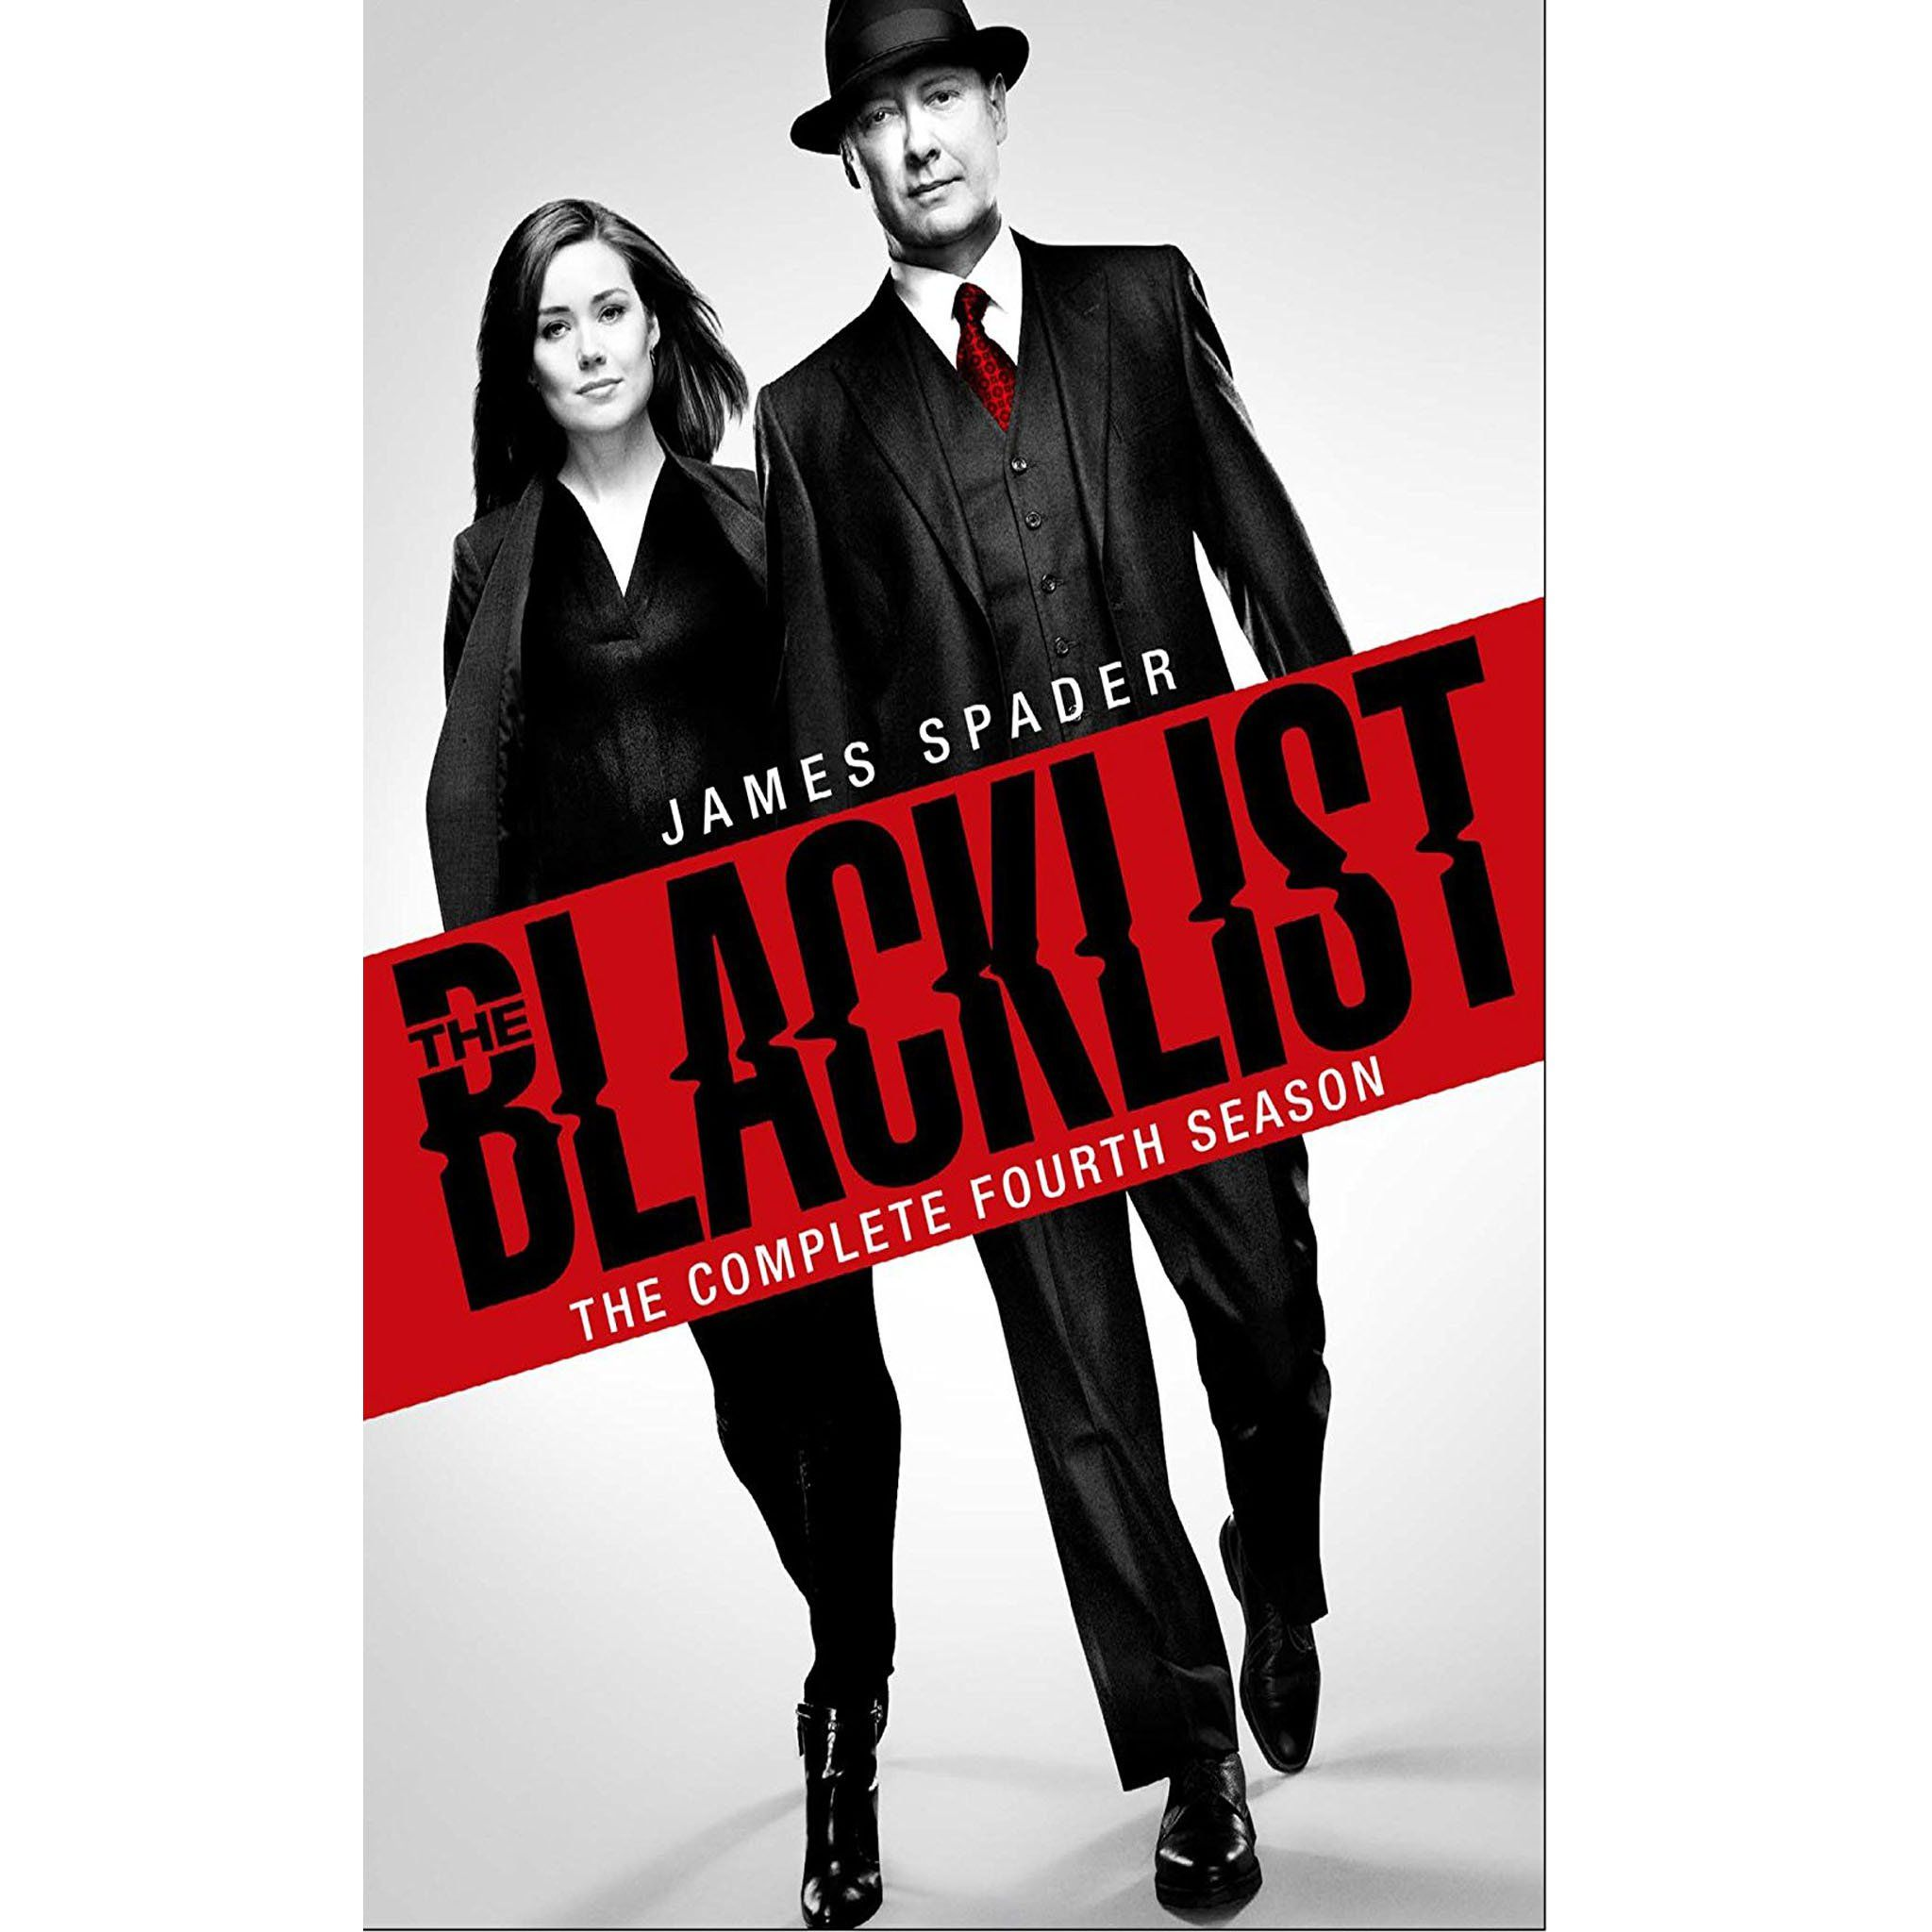 The Blacklist Season 4 (DVD) James spader, The blacklist